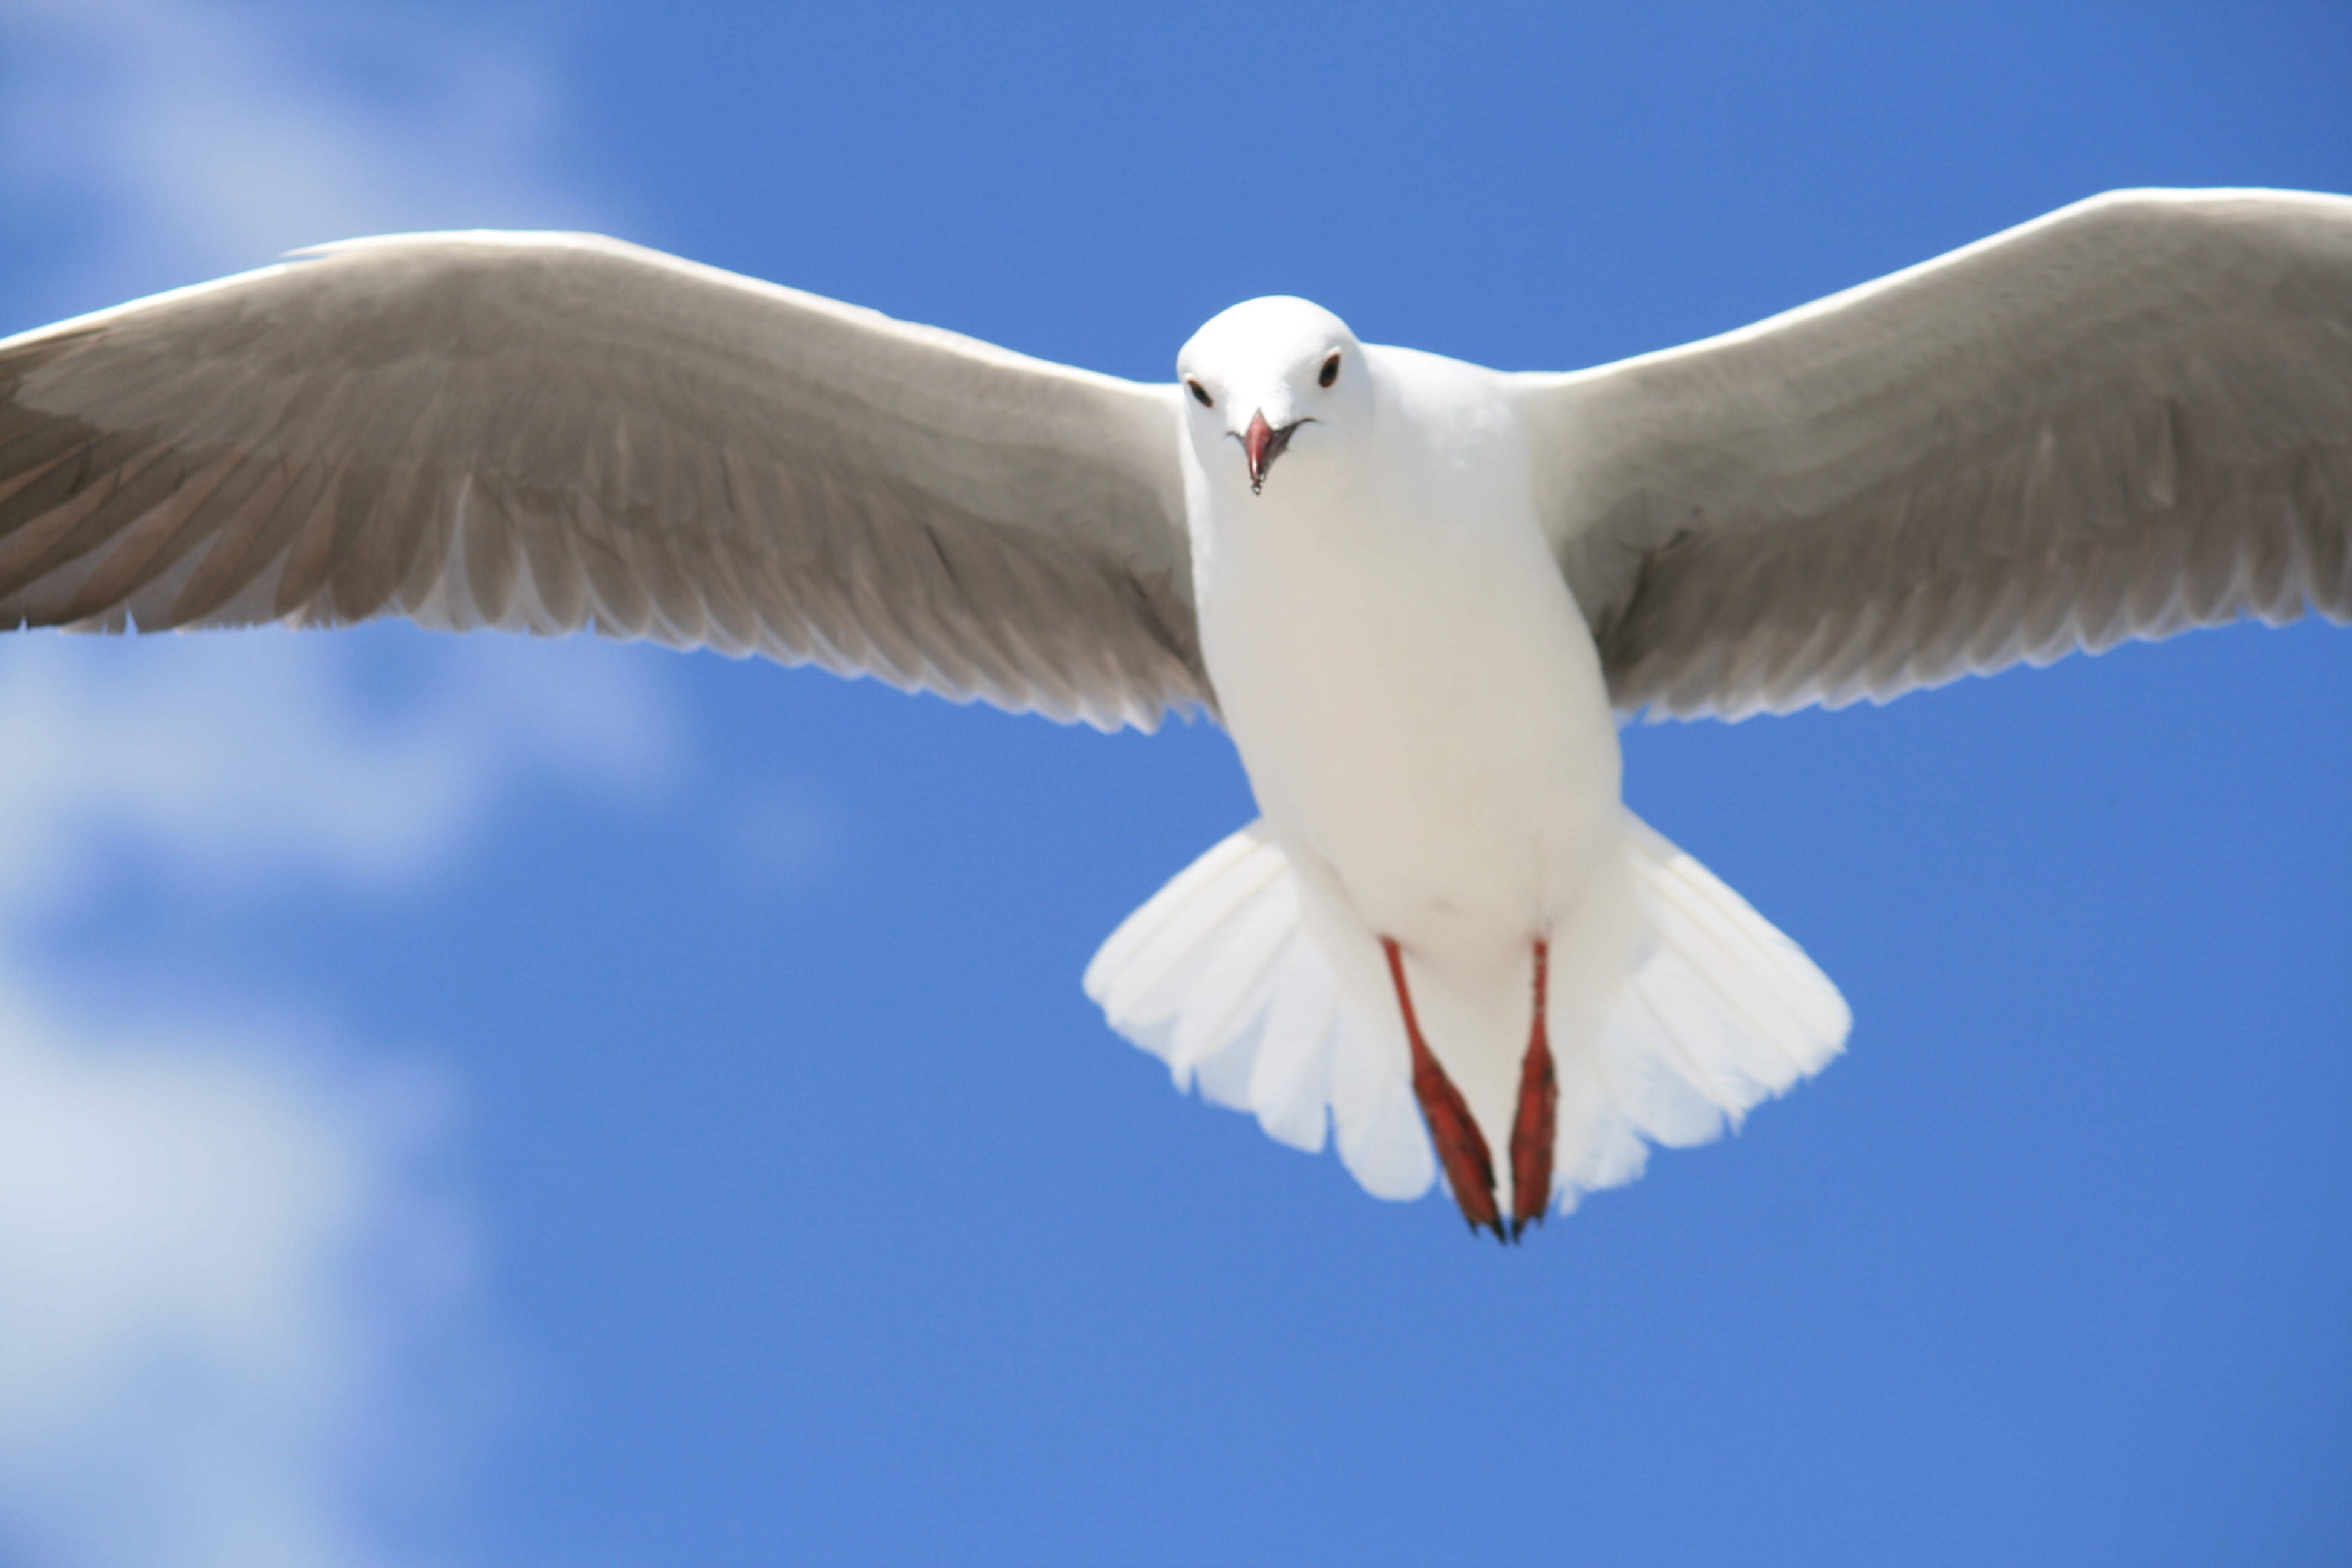 A majestic seagull in flight with its wings outstretched against the blue sky